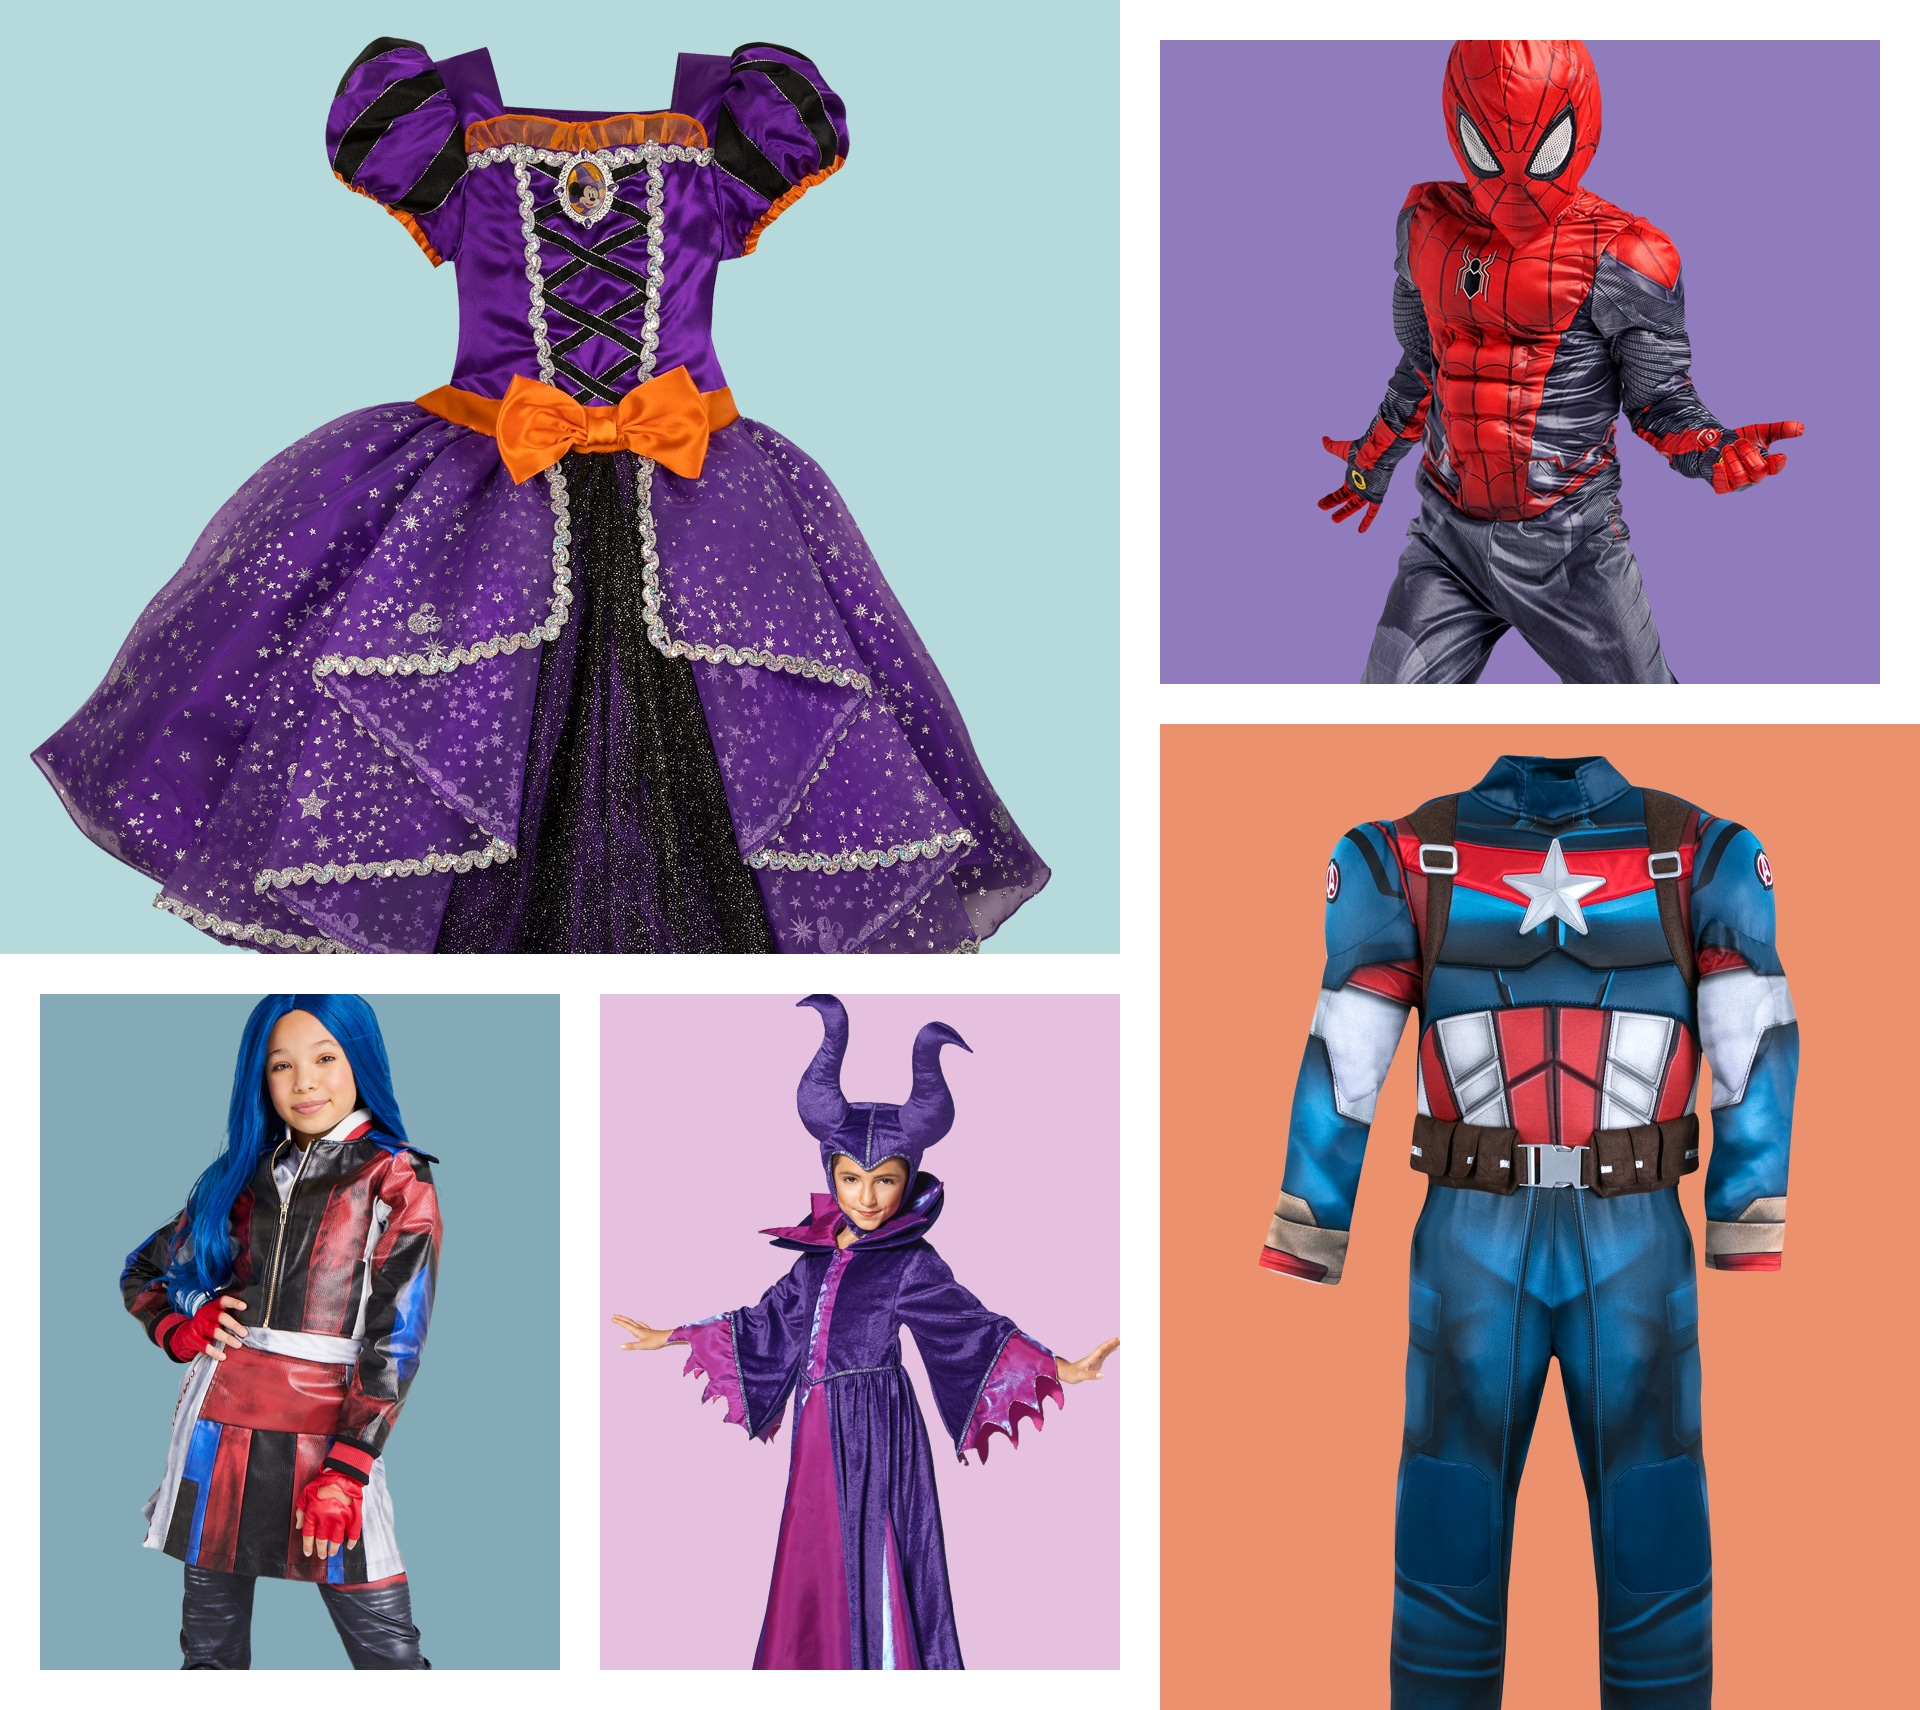 A selection of Halloween products available for adults at shopDisney including an Incredibles 2 suit for men and Mickey gloves